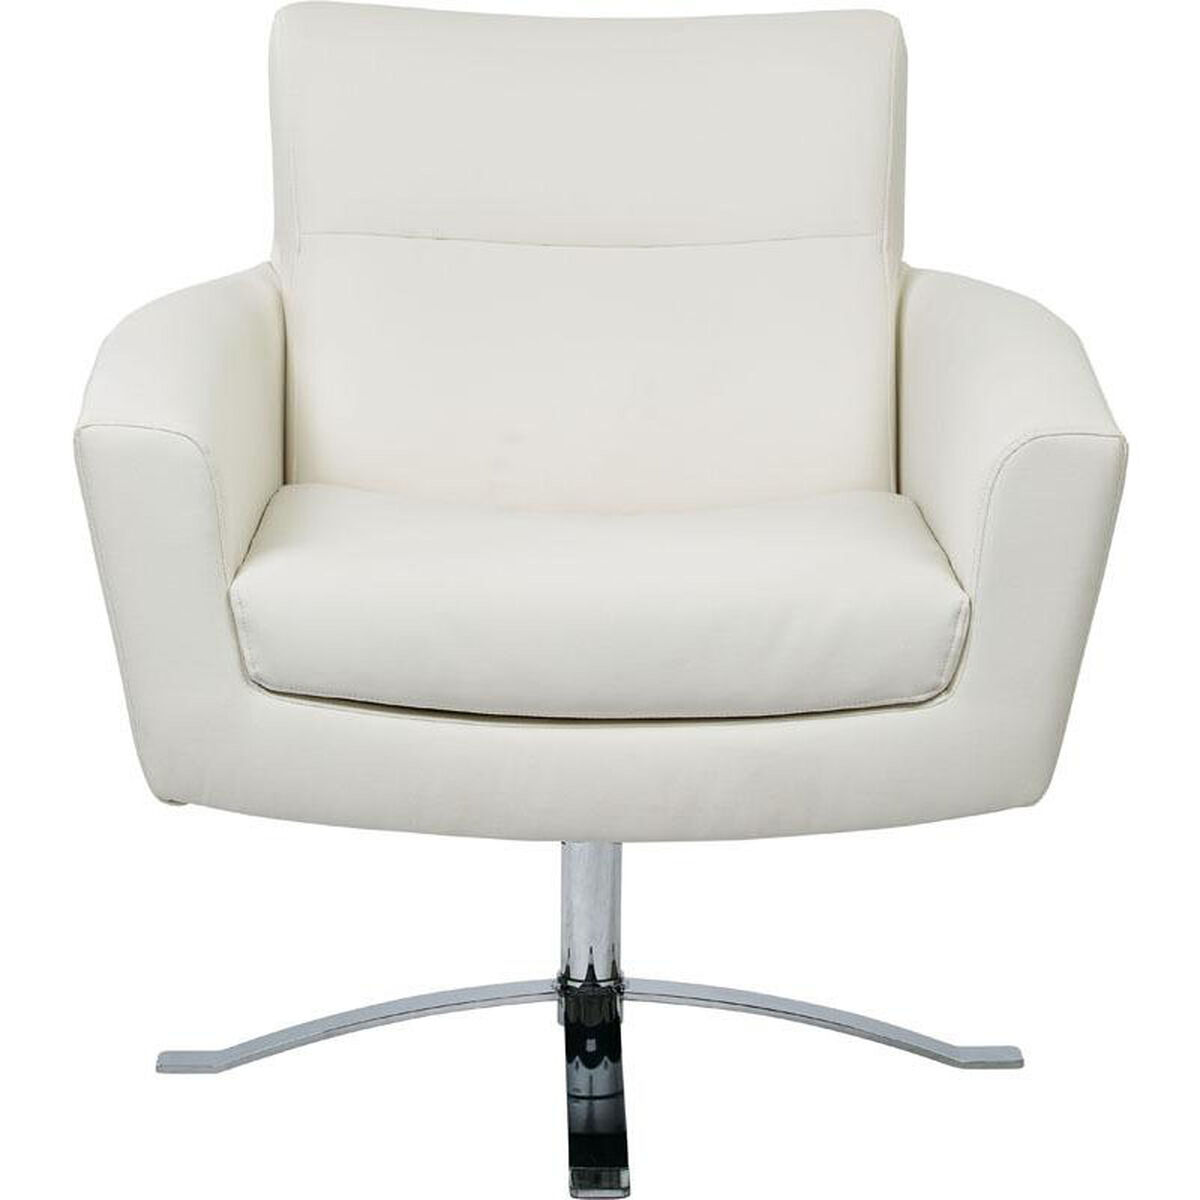 Wide Base Office Chair Chair Rolling Office Chair Desk